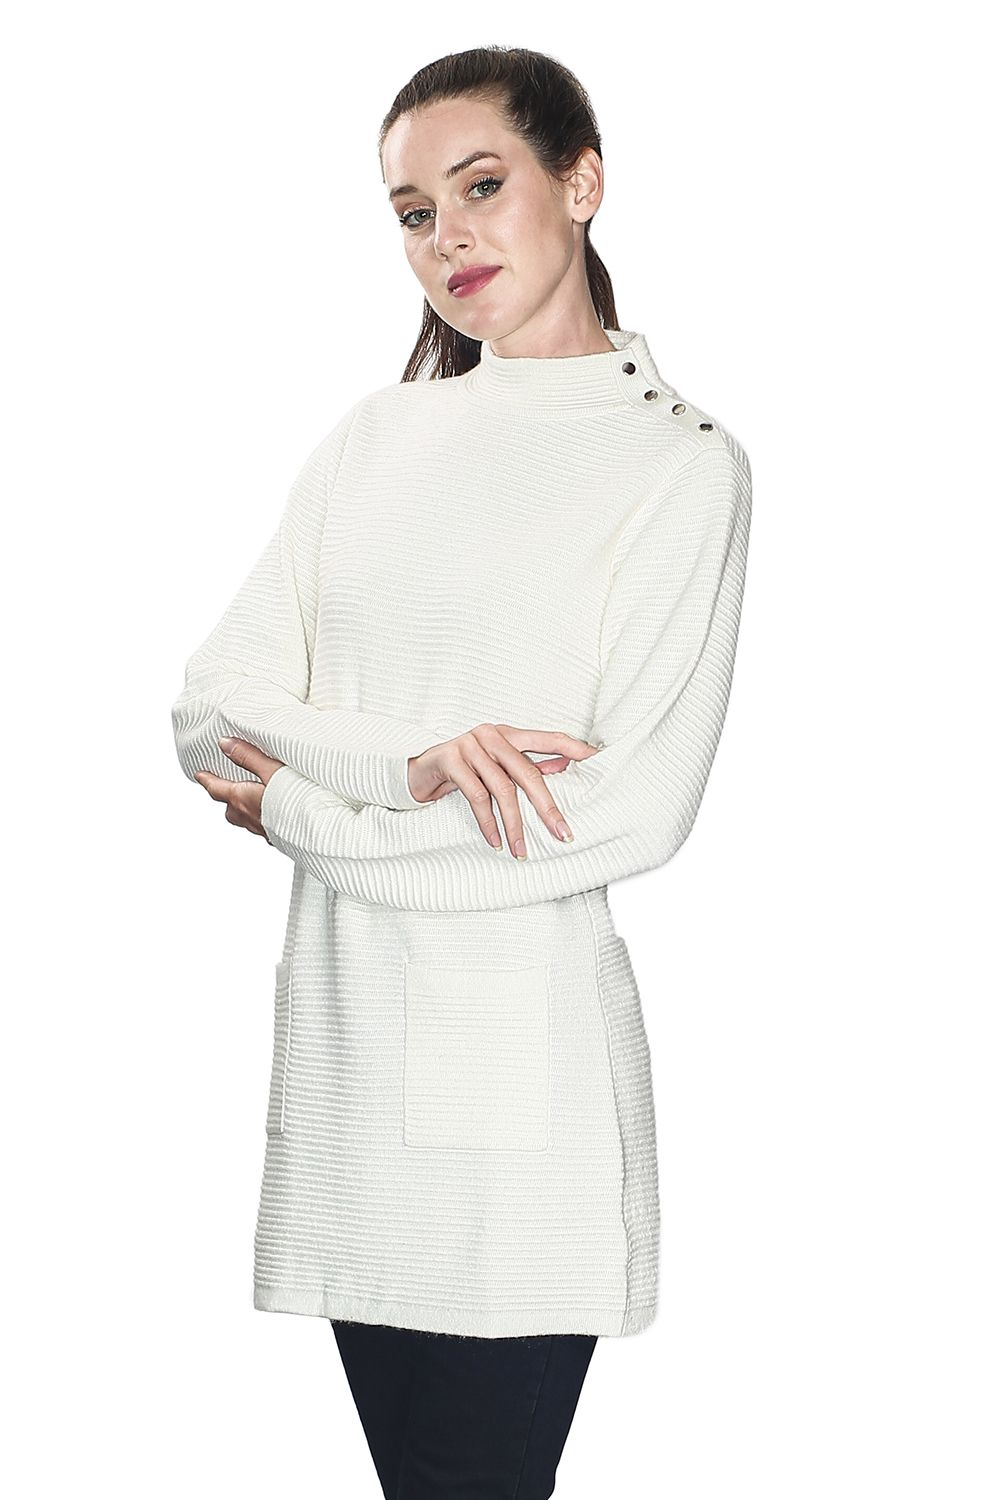 Assuili Long Sleeve Tunic with Pockets and Buttoned Shoulders in Natural